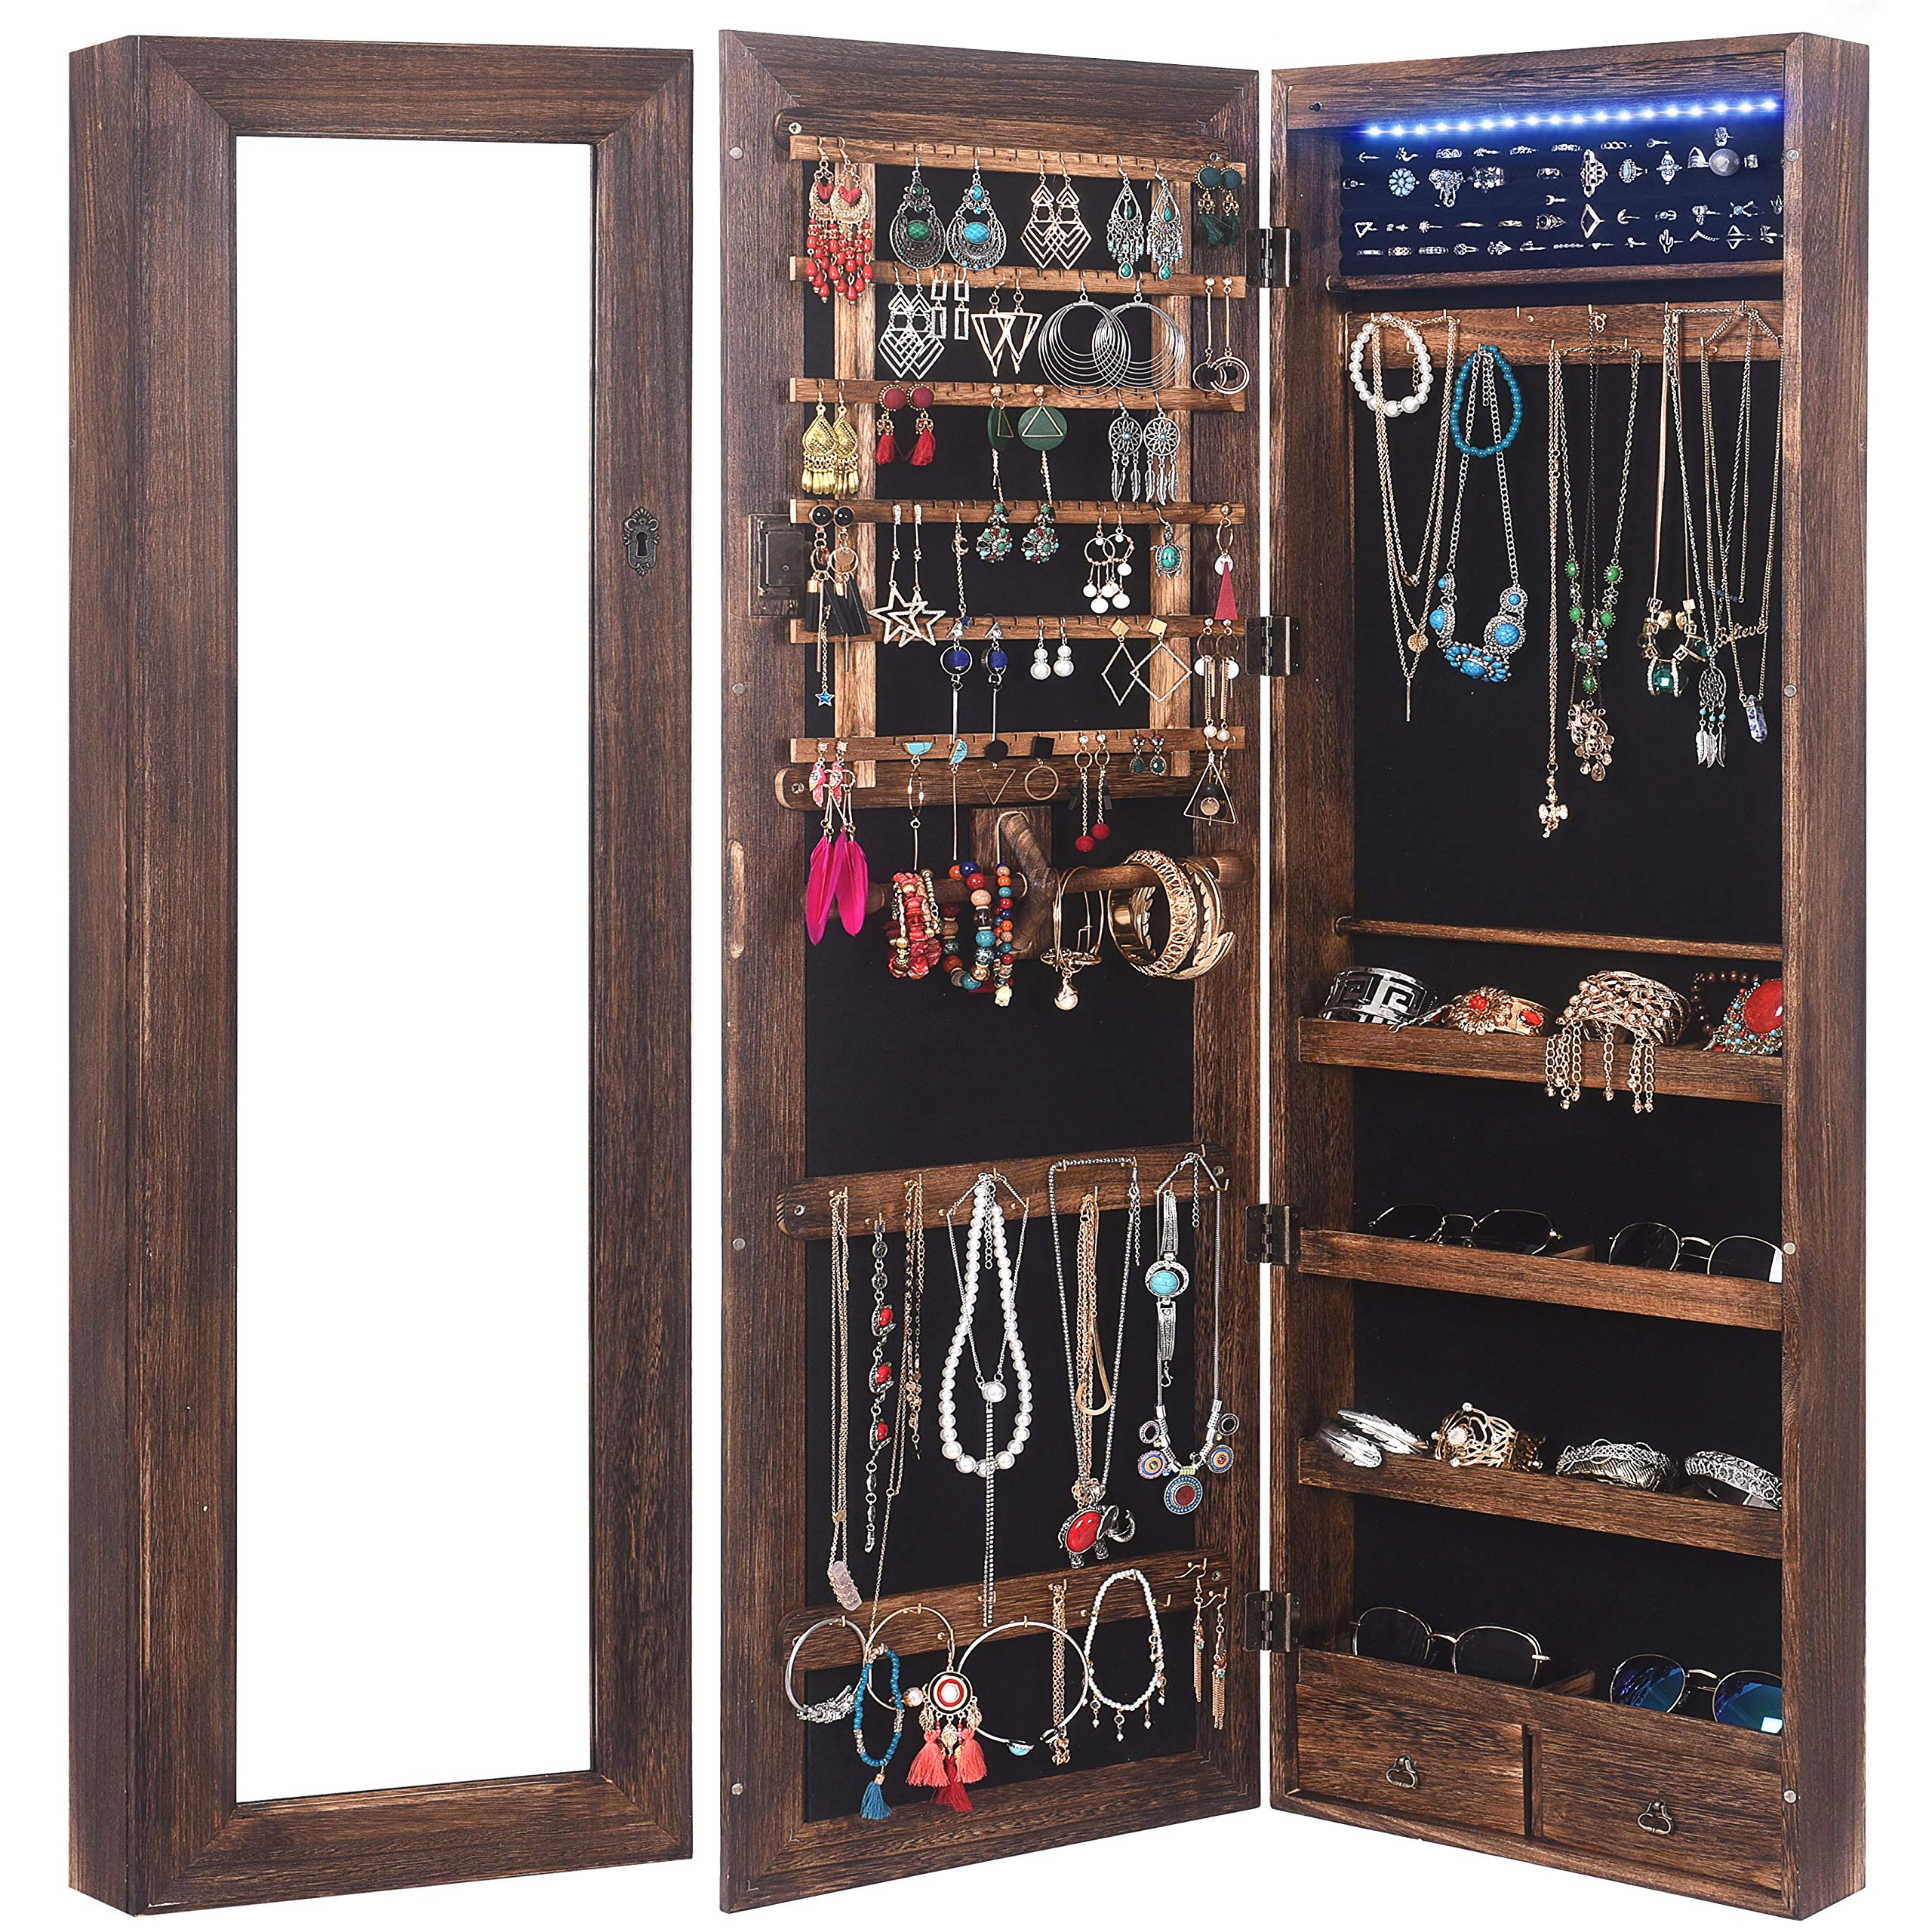 RHF Solid Wood Rustic Jewelry Organizer Lockable Jewelry Armoires Large Jewelry Cabinet with Mirror 2 Drawers 18 leds Jewelry Boxes Case Hanging Over The Door Jewelry Armoire with Mirror